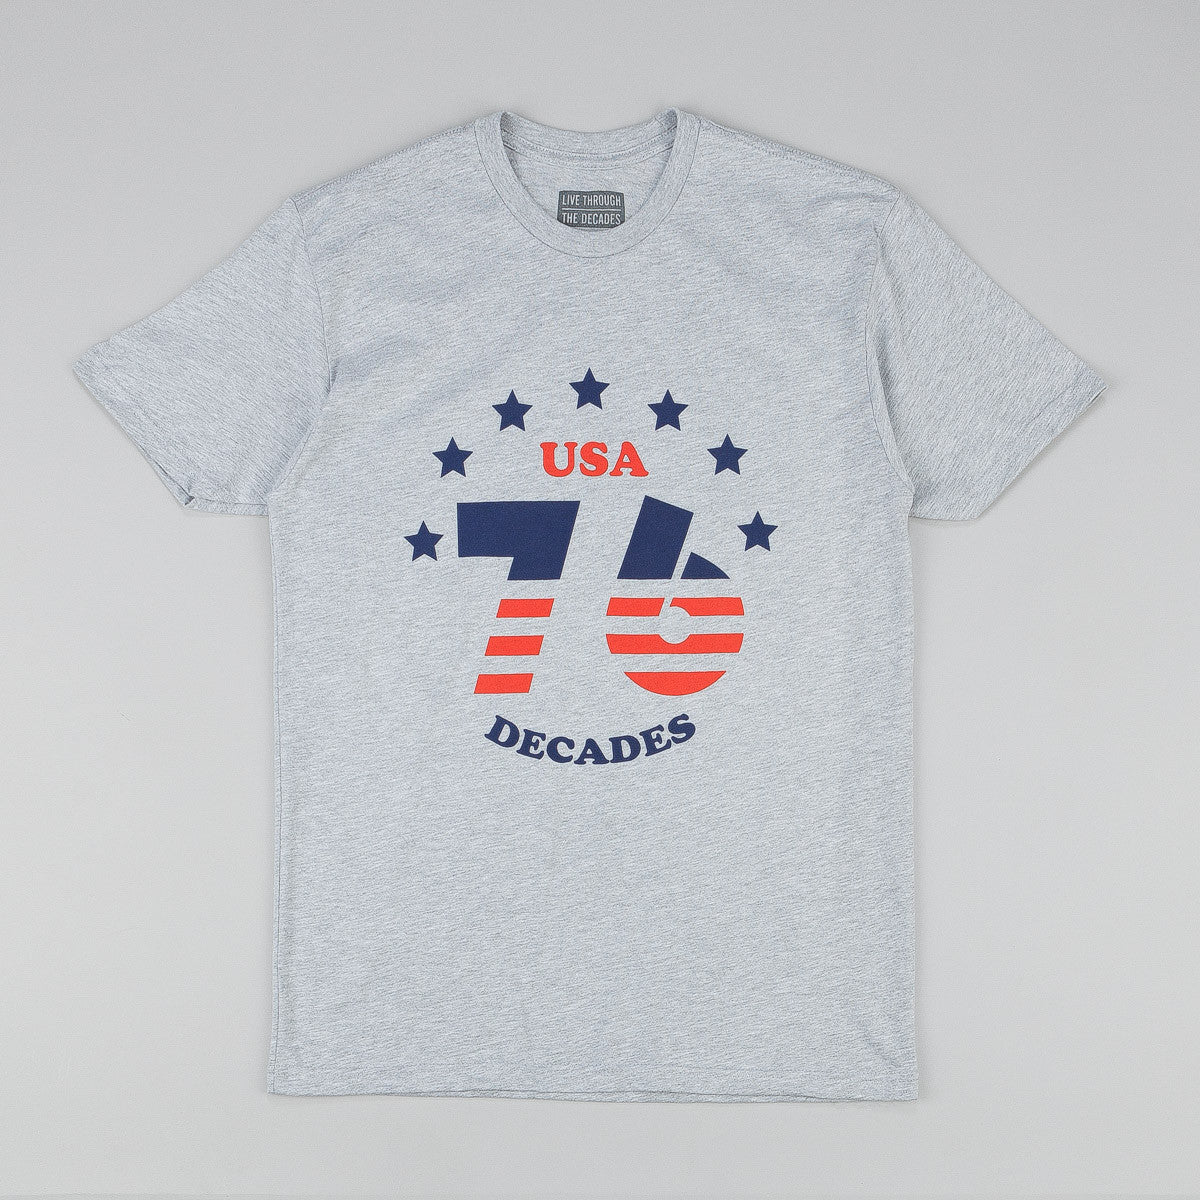 The Decades 'Bicentennial' T-Shirt - Heather Grey